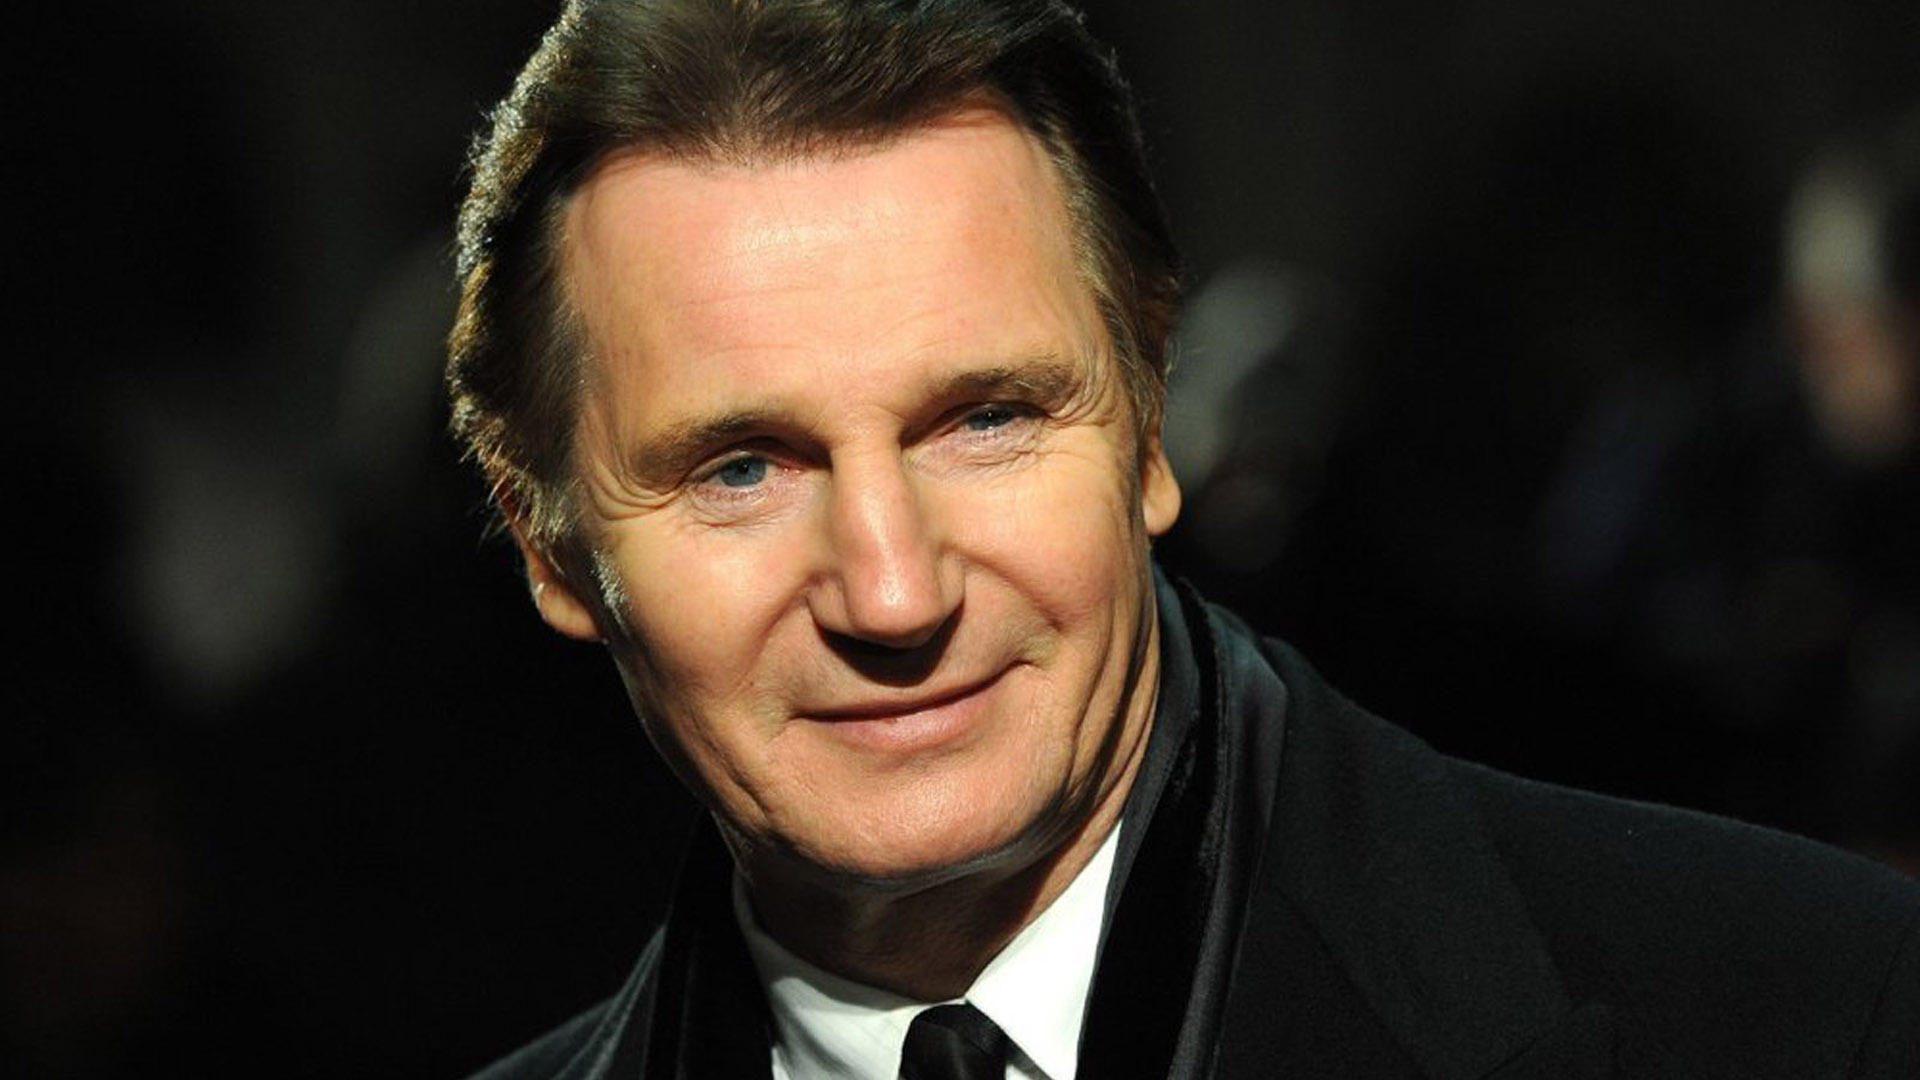 Image Source: liamneeson.net